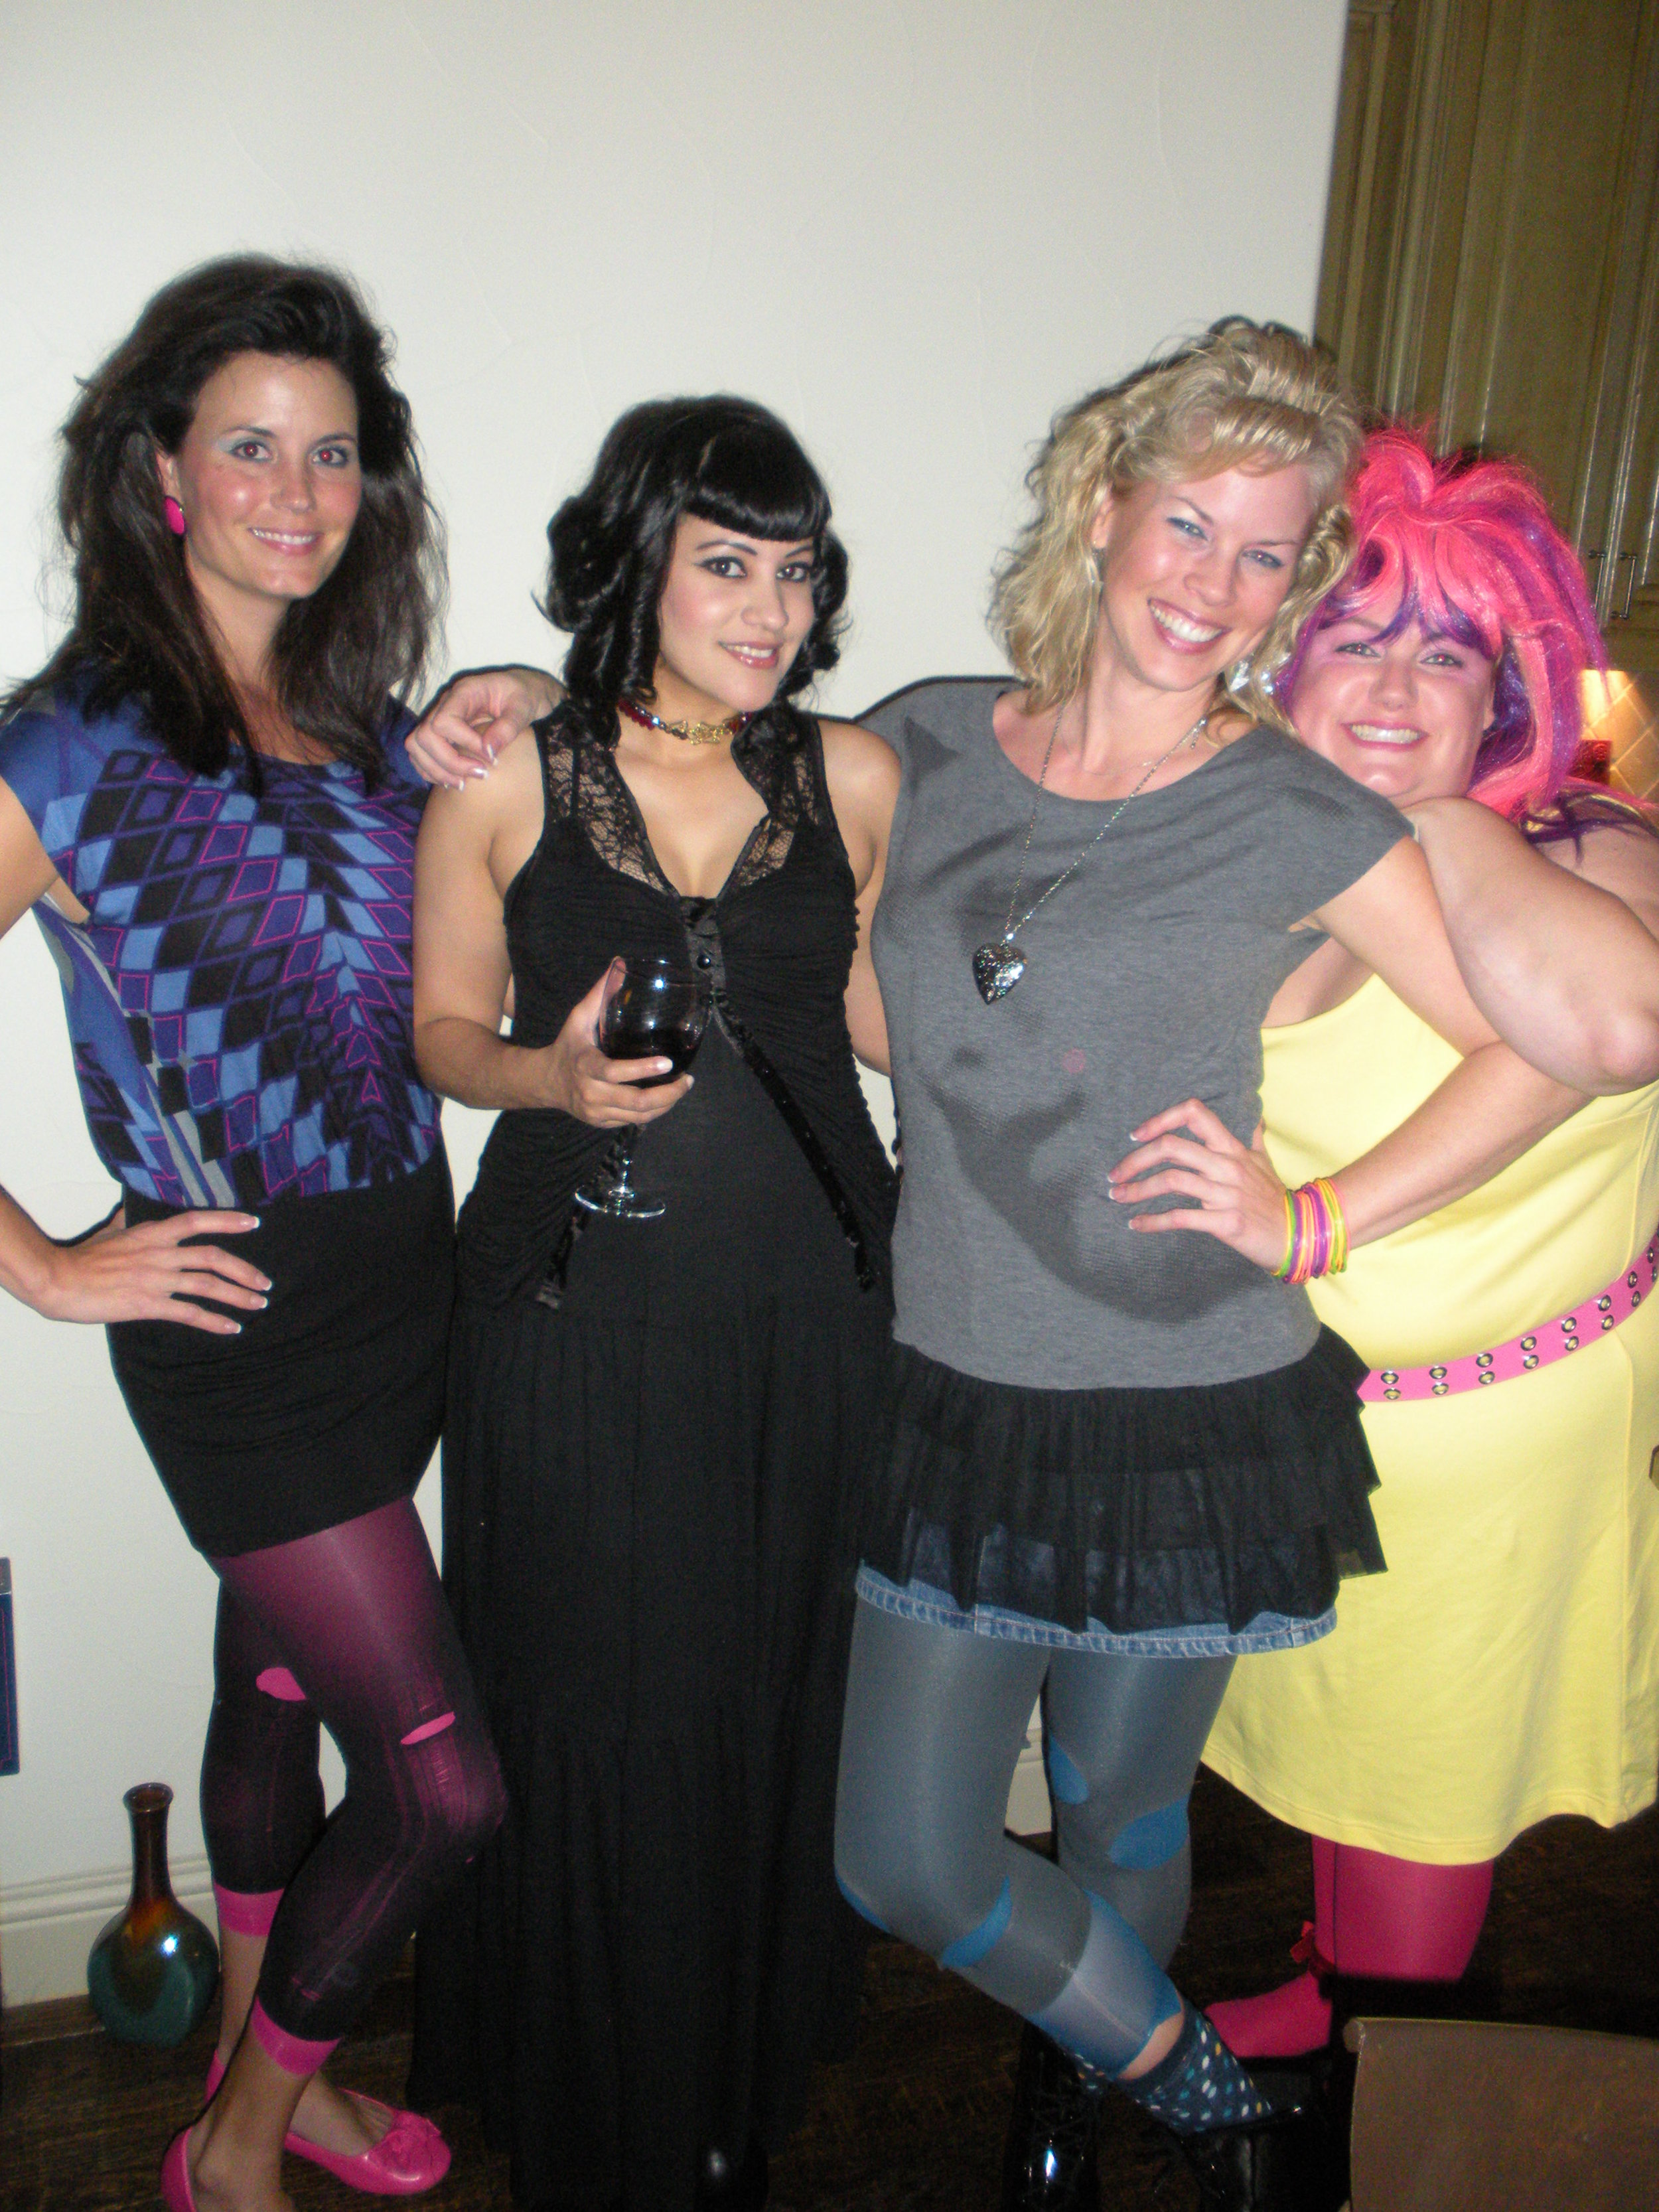 here is a pic of us, dressed like we did back then. yes, the '80's are a thing in the 21st century.